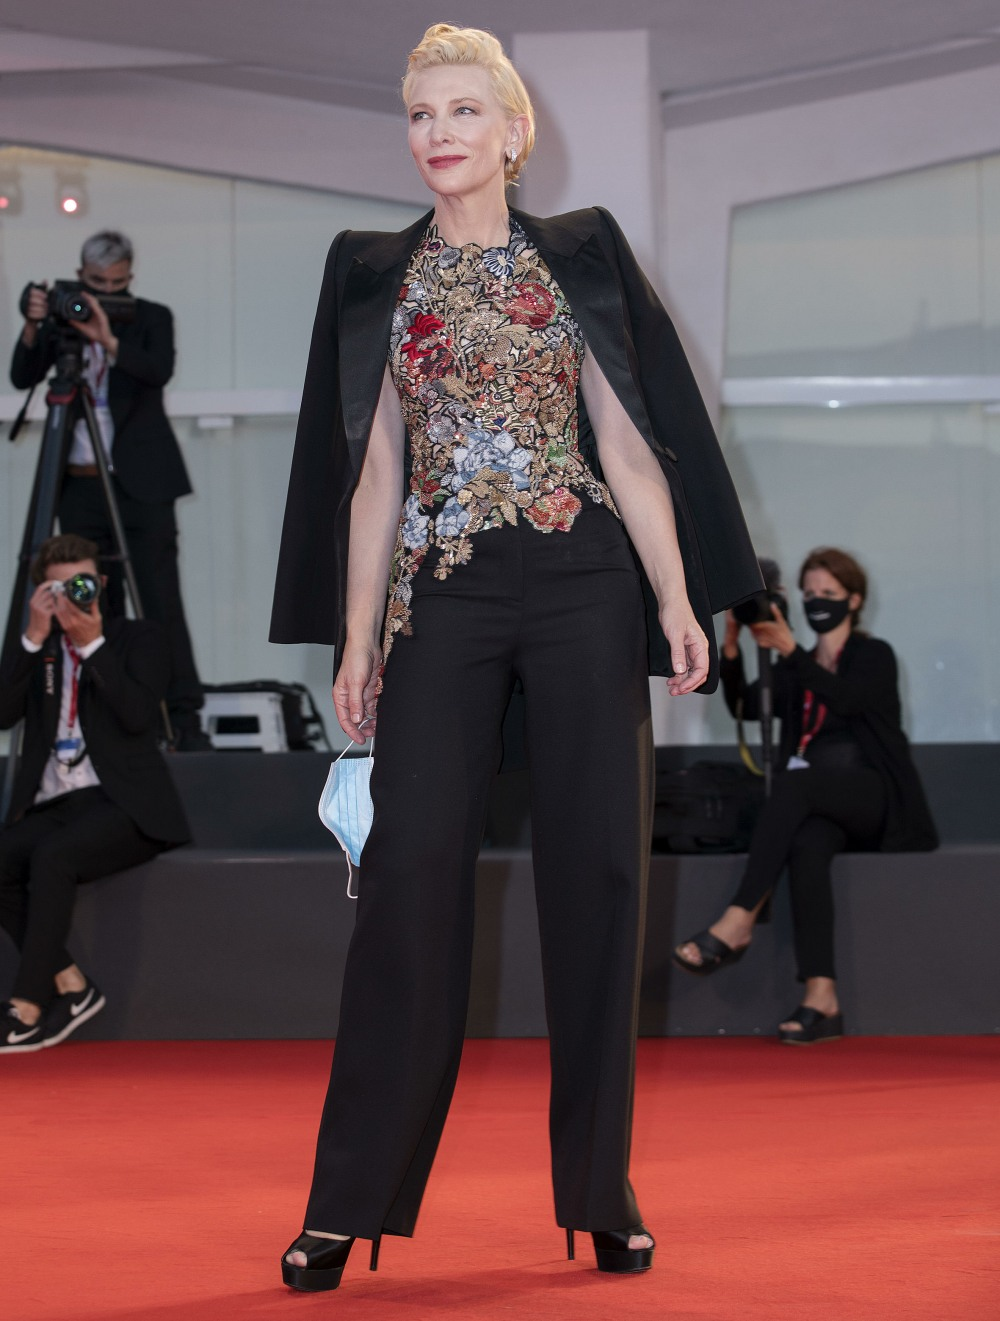 77th Venice Film Festival held in Venice, Italy - The Human Voice Premiere - Arrivals